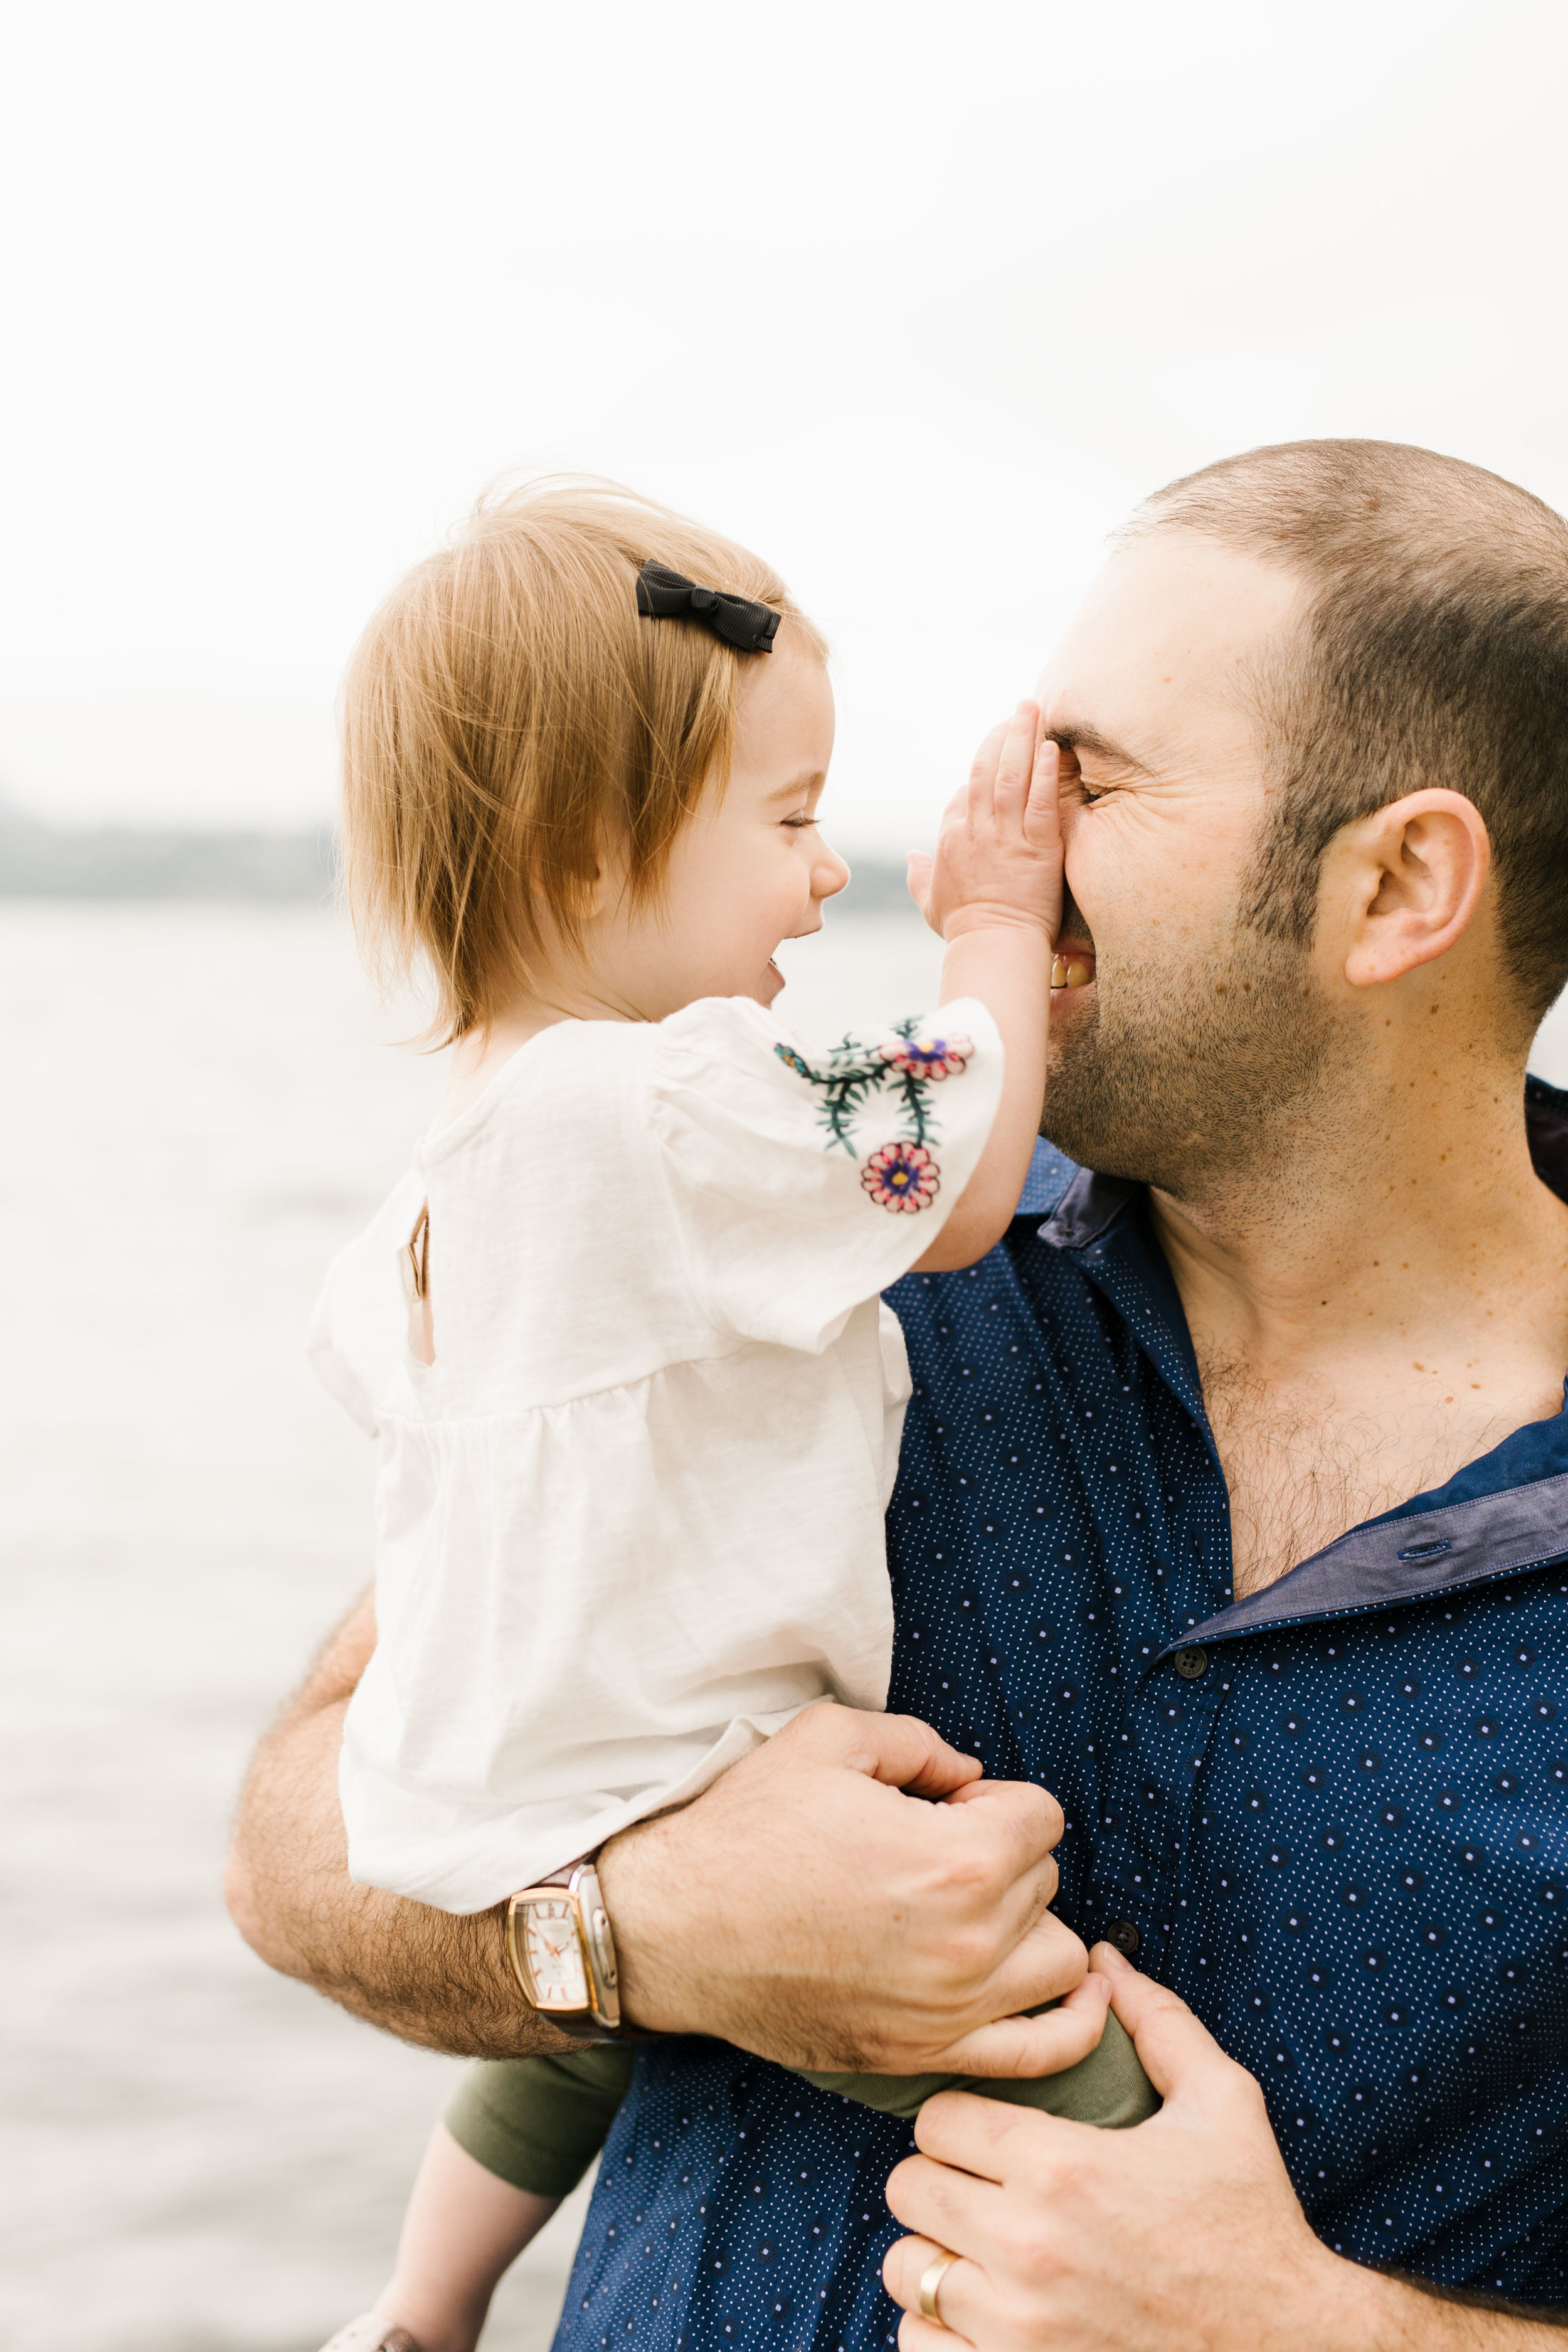 Family Photography Session on the Beach in Seattle Bellevue WA Natural Light Chelsea Macor Photography-13.jpg